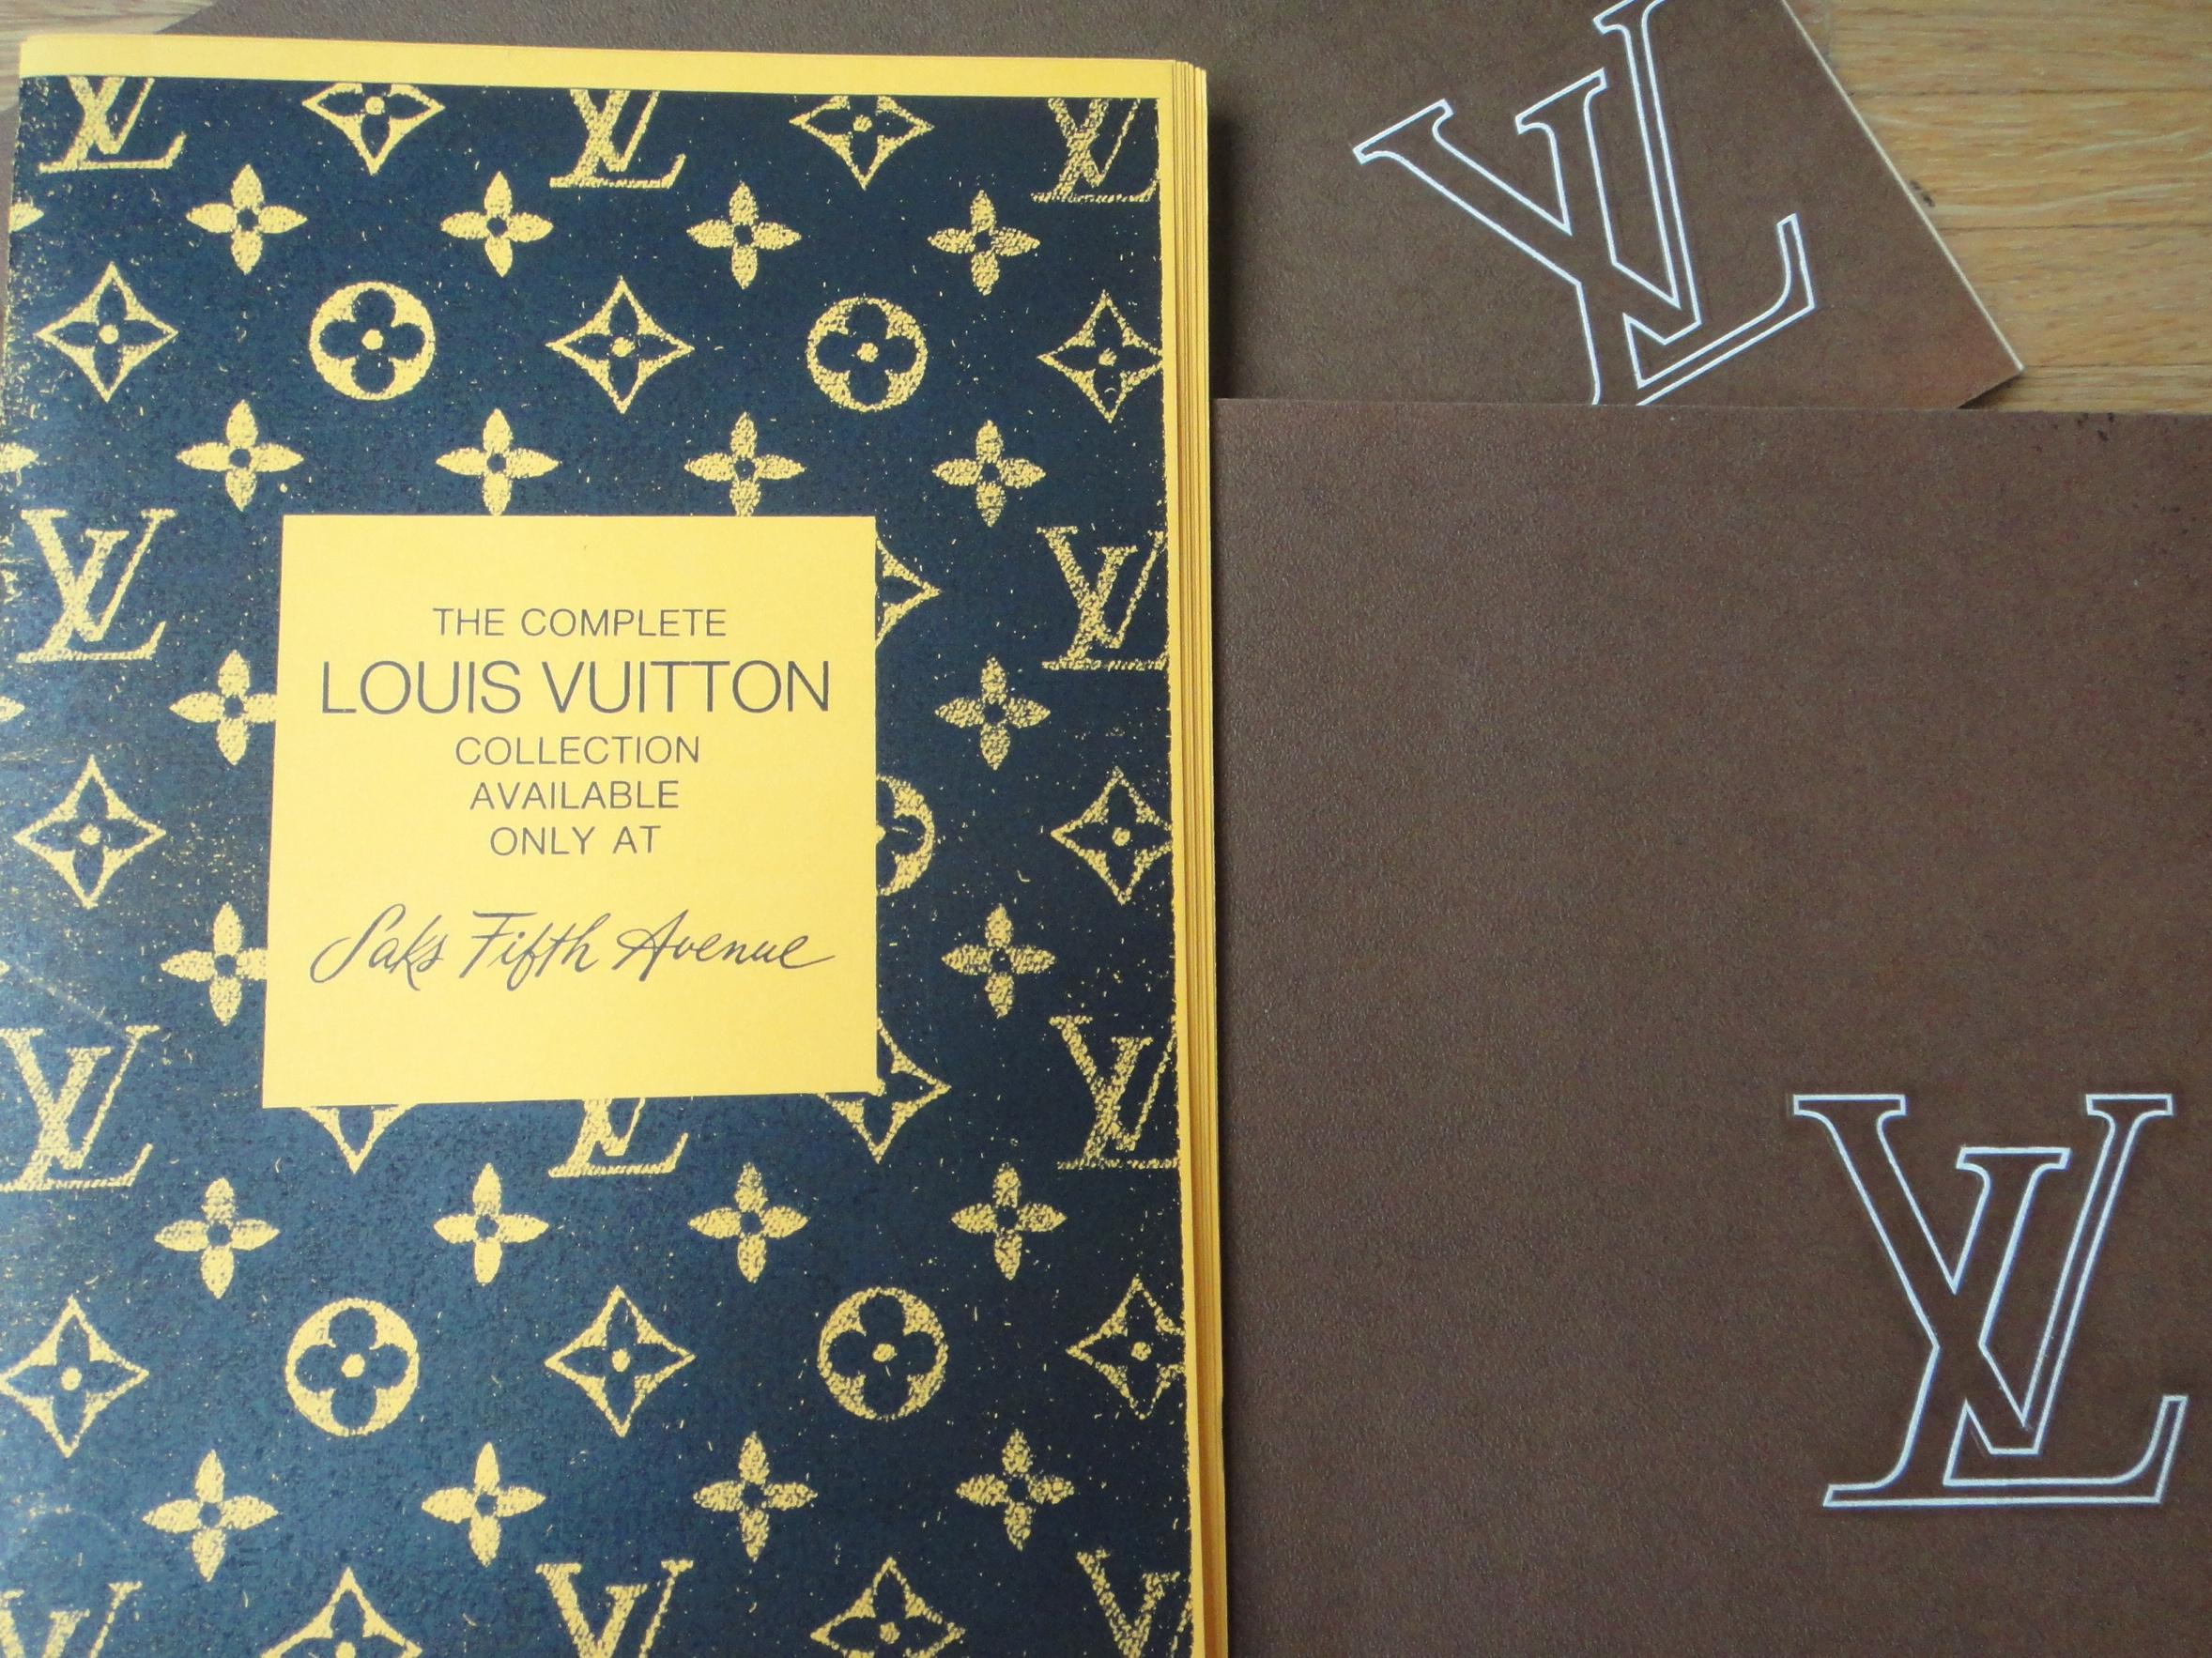 vintage Louis Vuitton catalogs